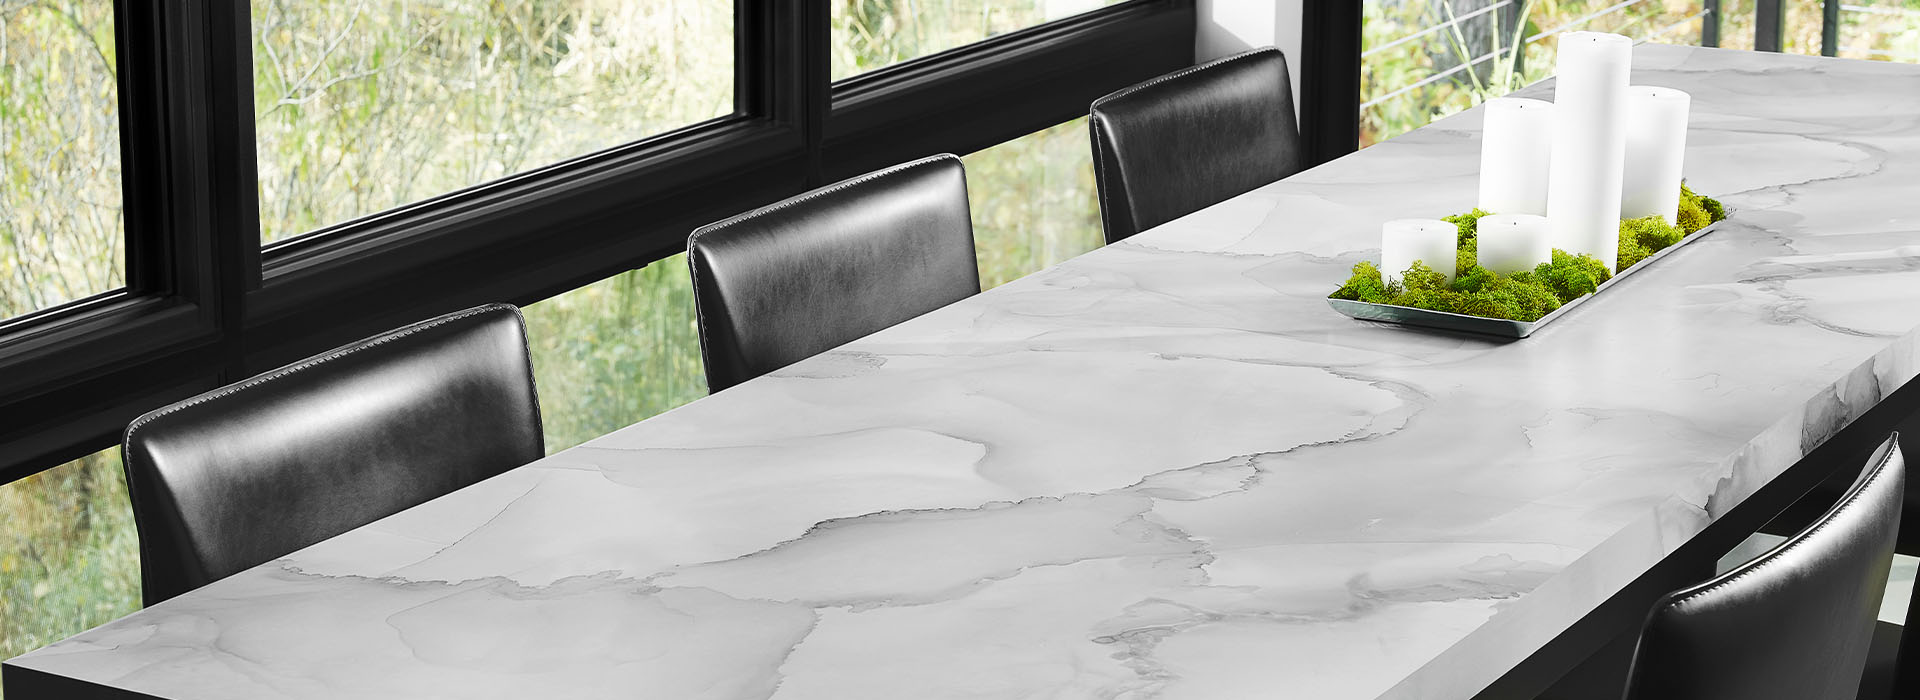 5016 Watercolor Porcelain 180fx® Laminate gives the look of gray marble on dining room table surrounded by chairs